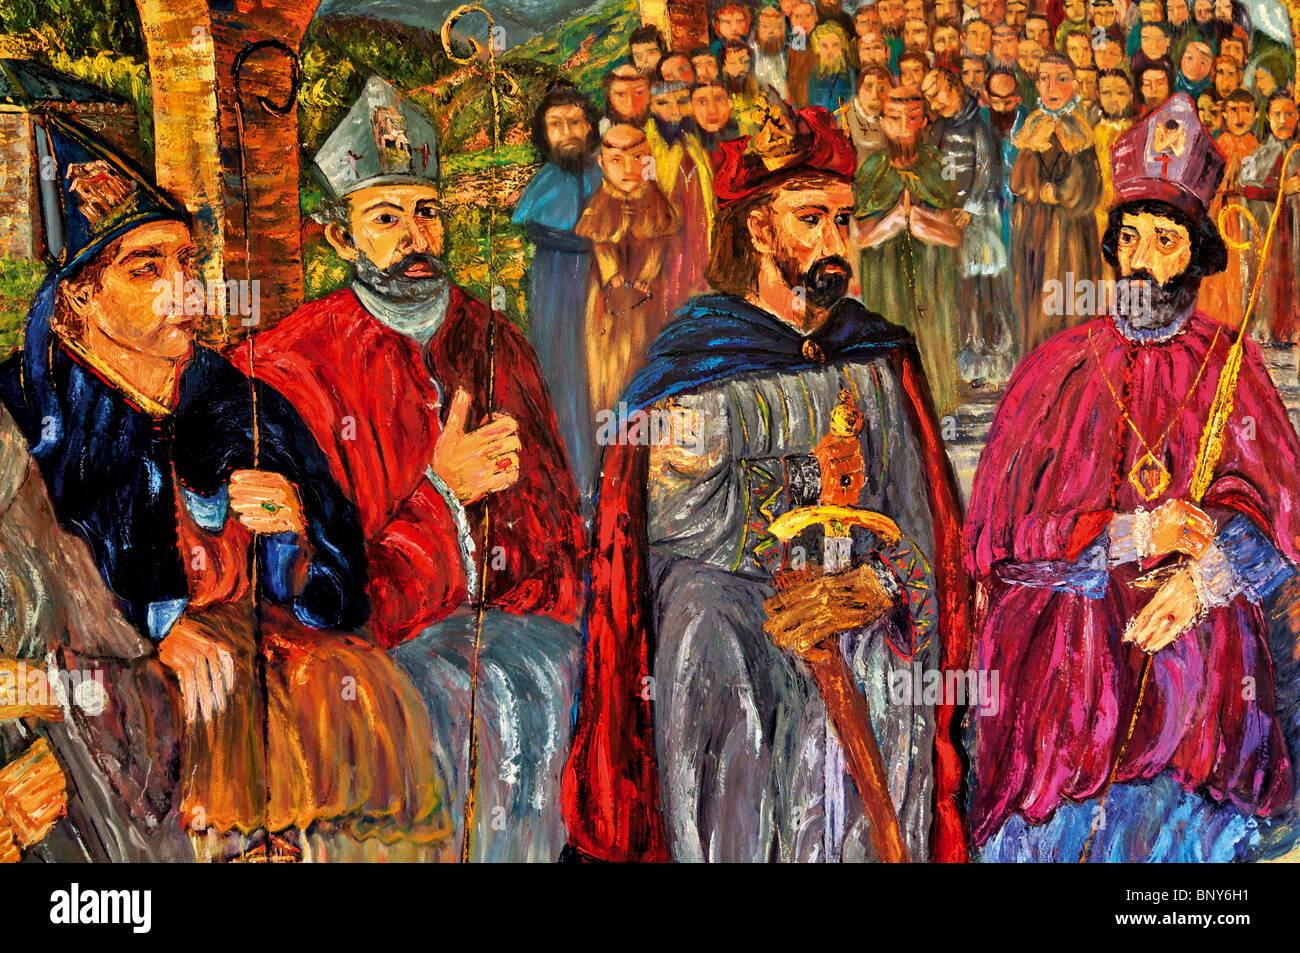 Spain, St. James Way: Medieval painting in the pilgrims hostage Albergue do Convento in Foncebadón - Stock Image